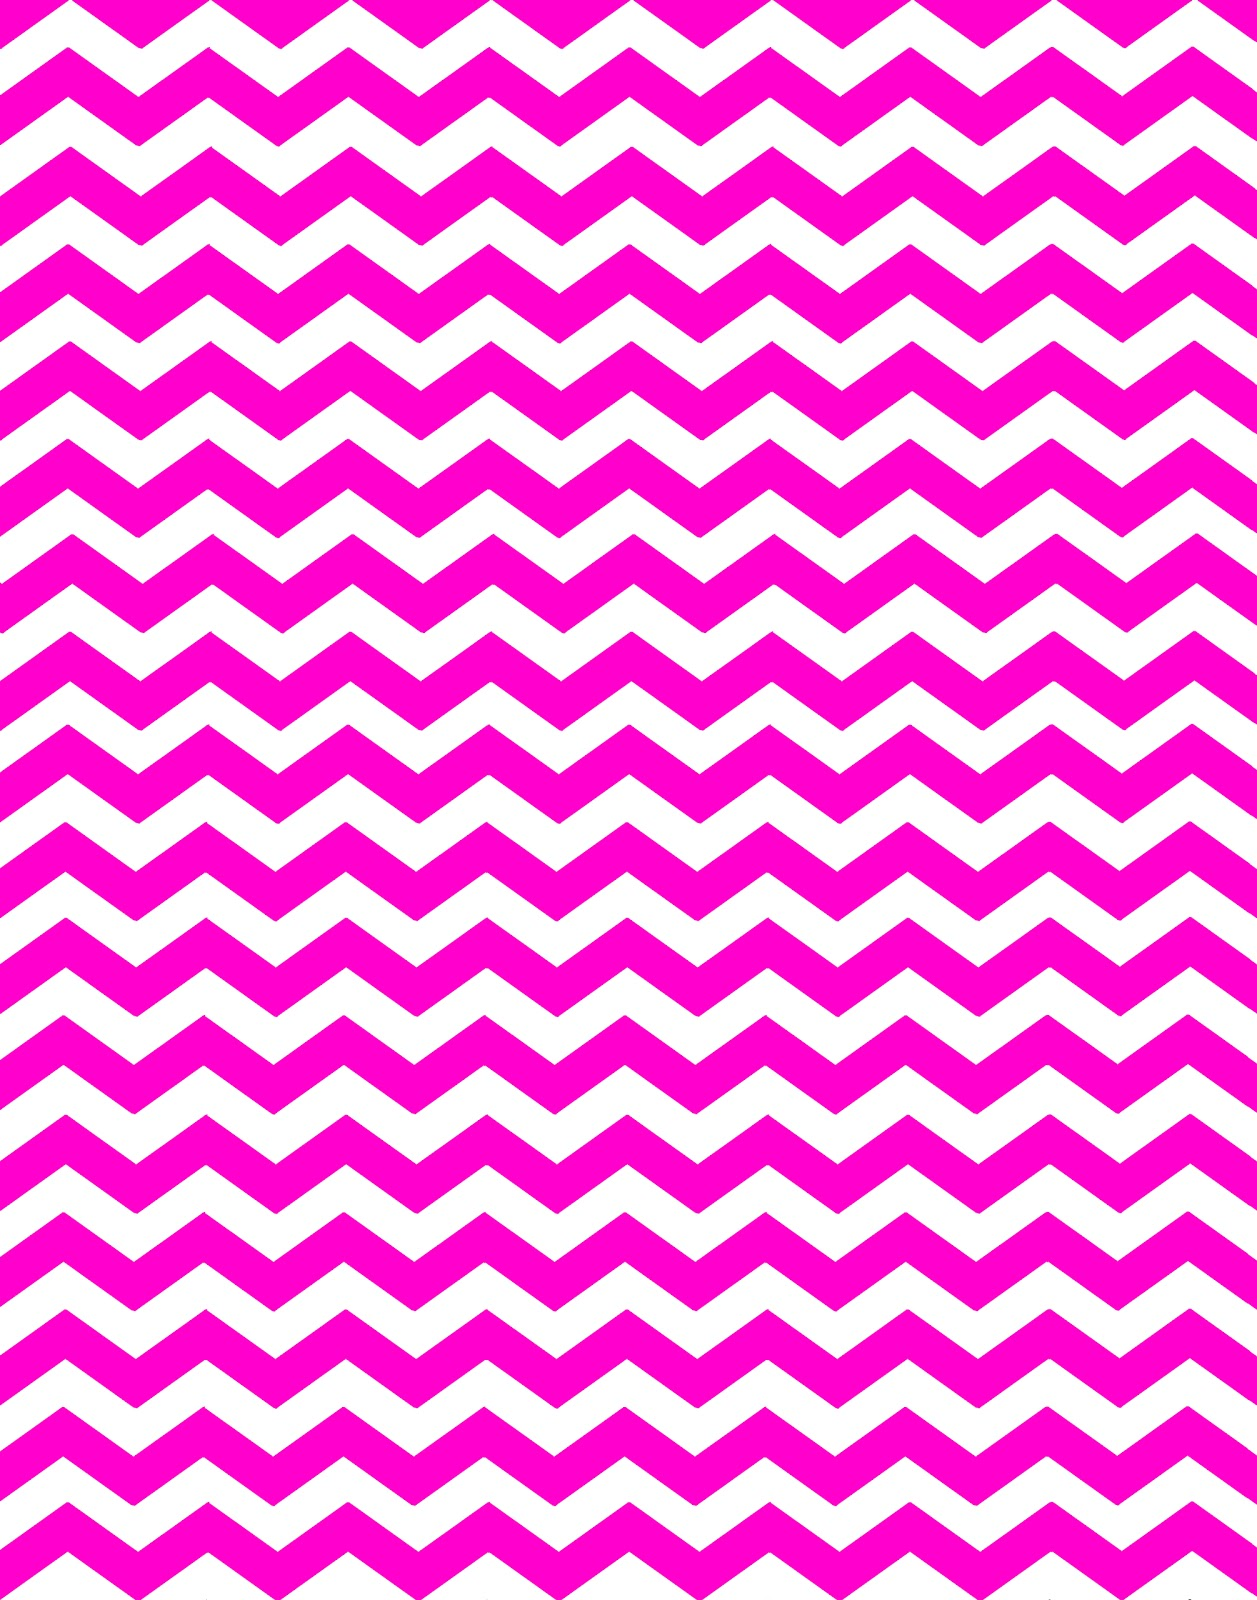 Doodlecraft: 16 New Colors Chevron background patterns!.